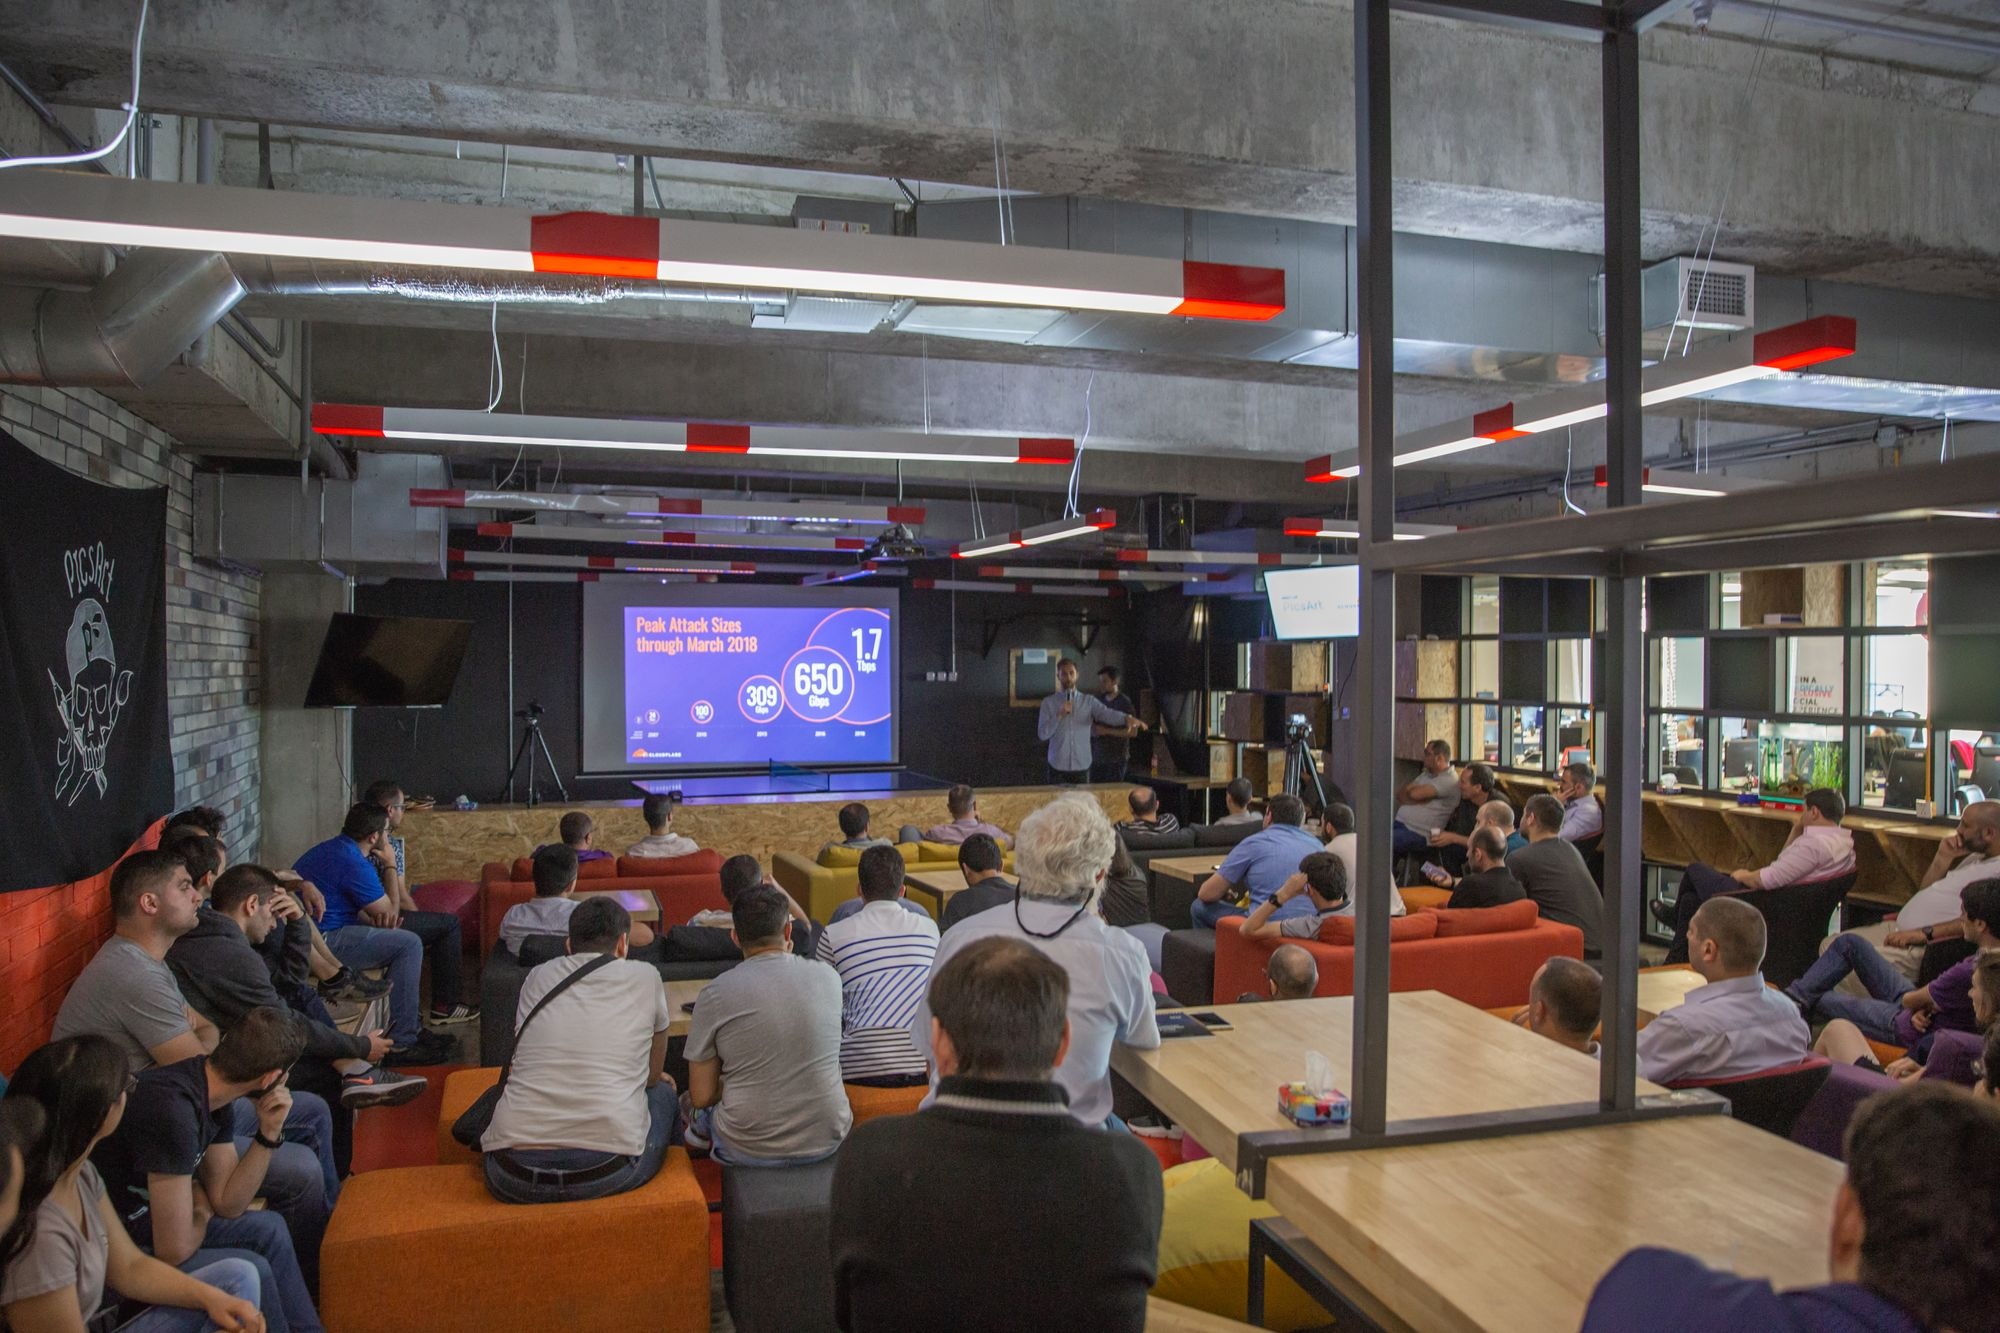 Join Cloudflare & PicsArt at our meetup in Yerevan!